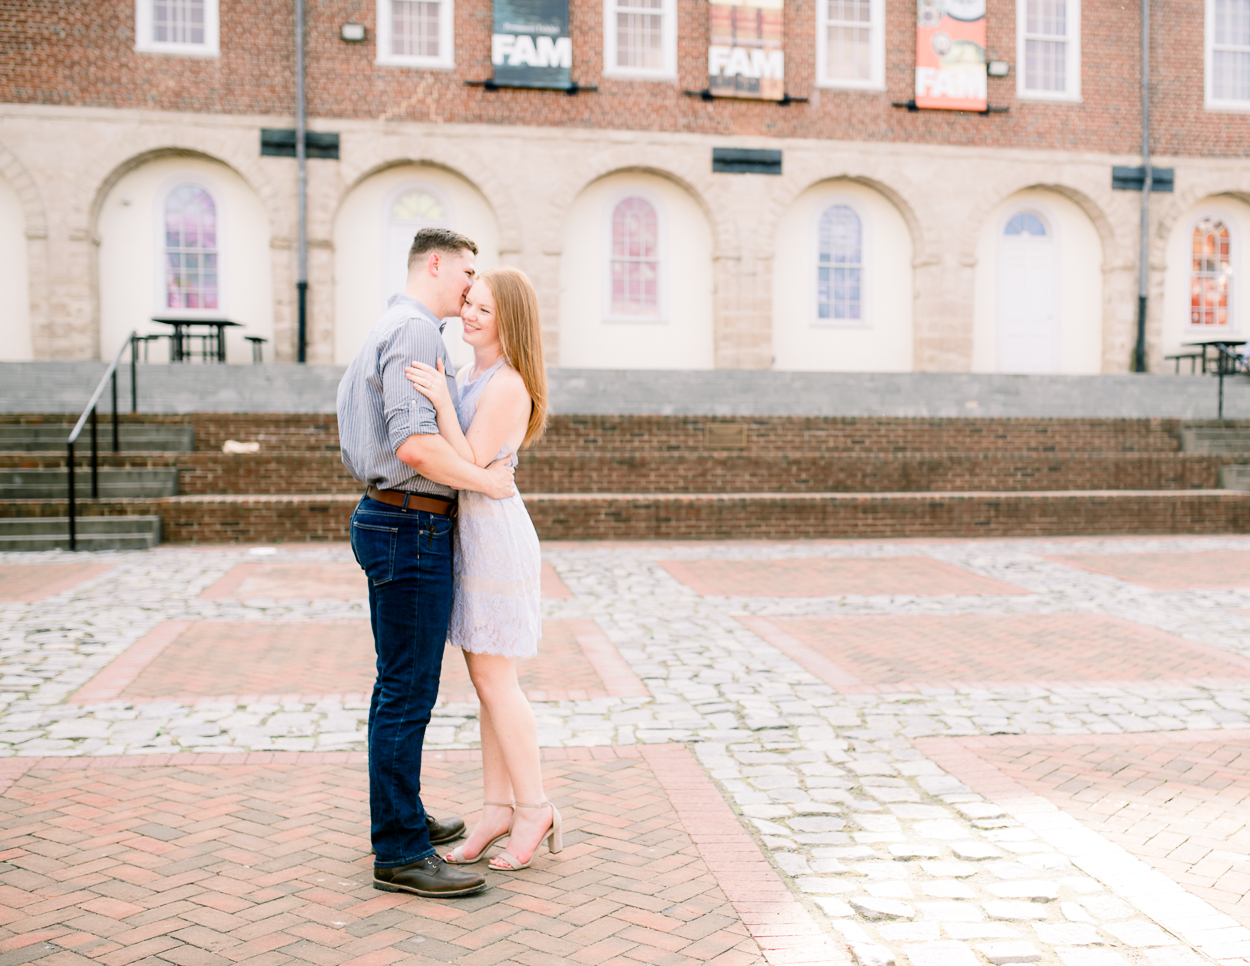 downtown_fredericksburg_engagement_virginiaweddingphotographer_youseephotography_MeghanJohn (8).JPG